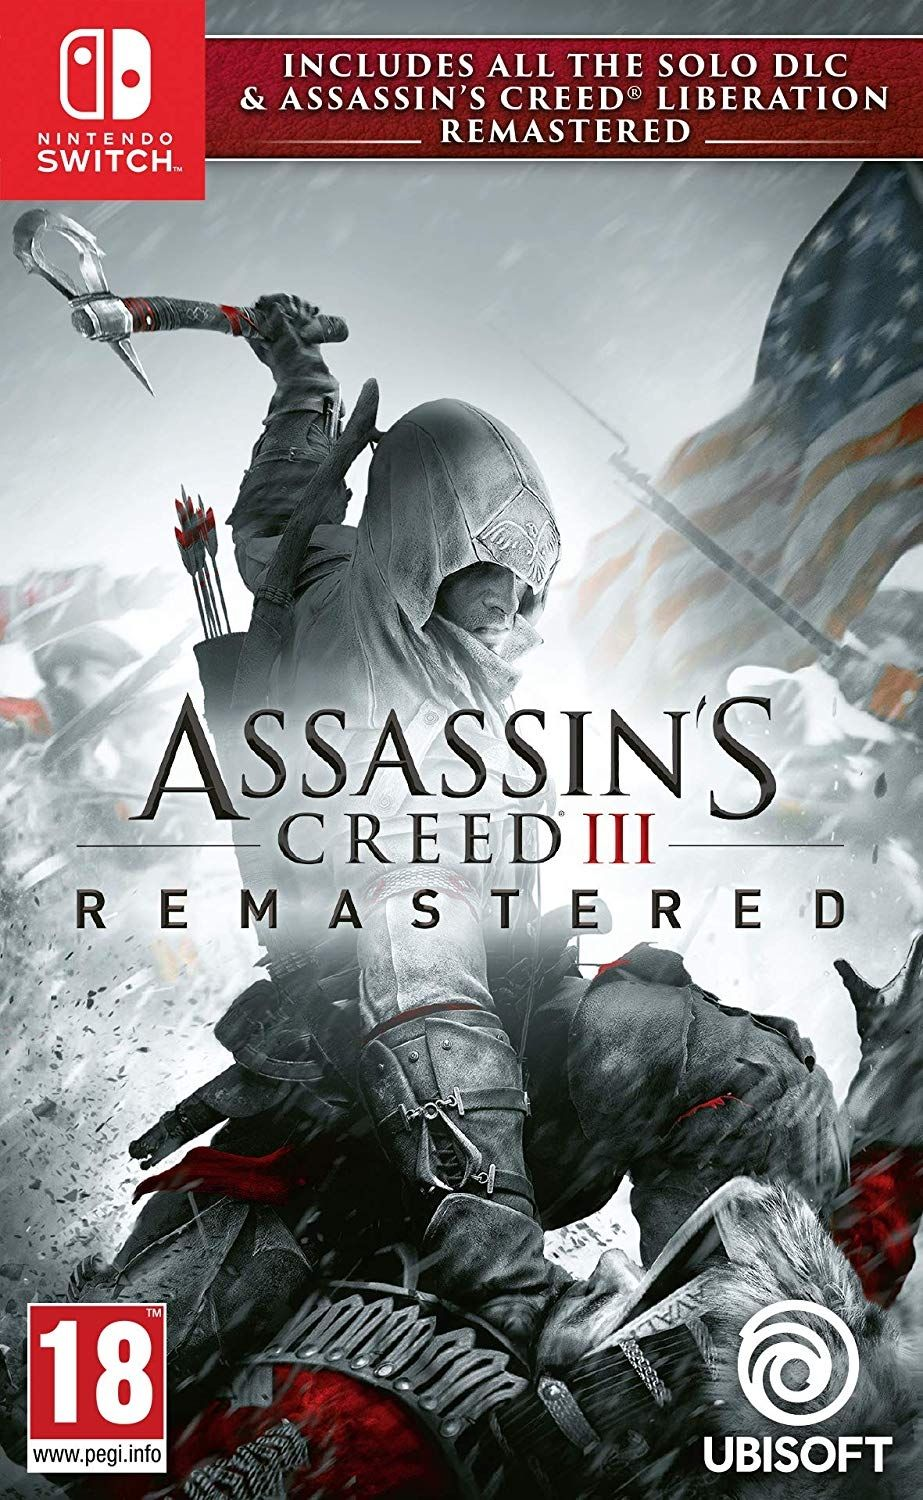 Assassin's Creed III Remastered + All Solo DLC & Assassin's Creed Liberation (Nintendo Switch) - 1